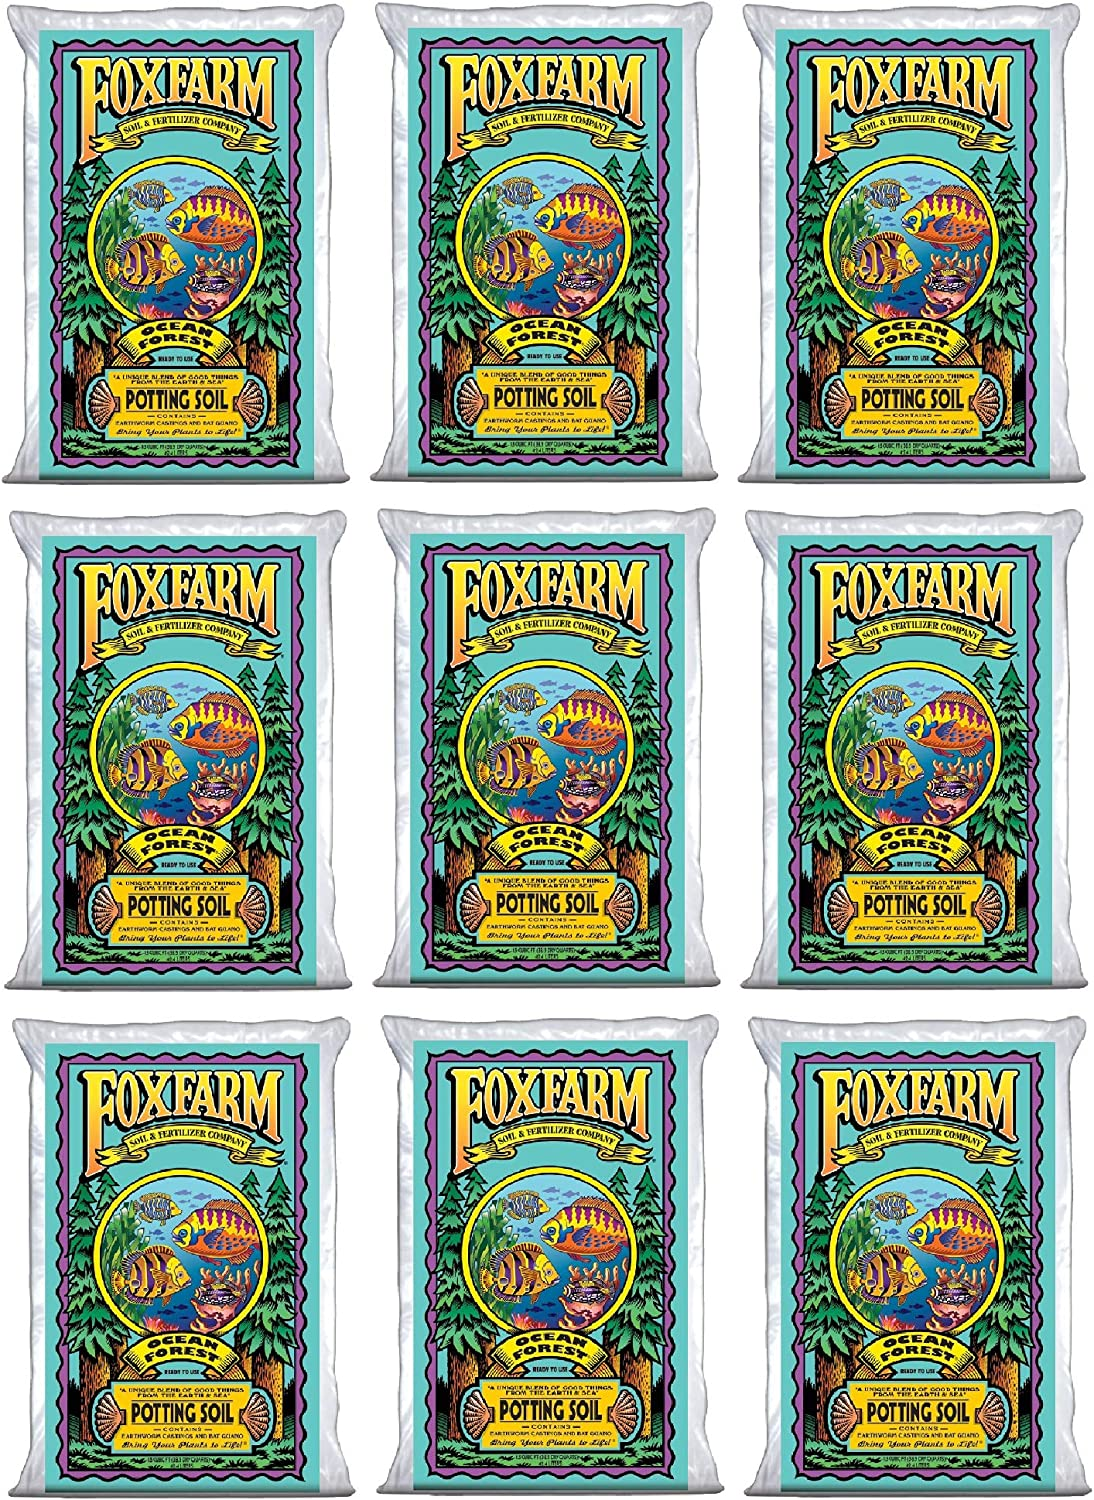 FoxFarm FX14000 Ocean Forest Plant Potting Soil 6.3-6.8 pH, 40 Pounds (9 Pack)